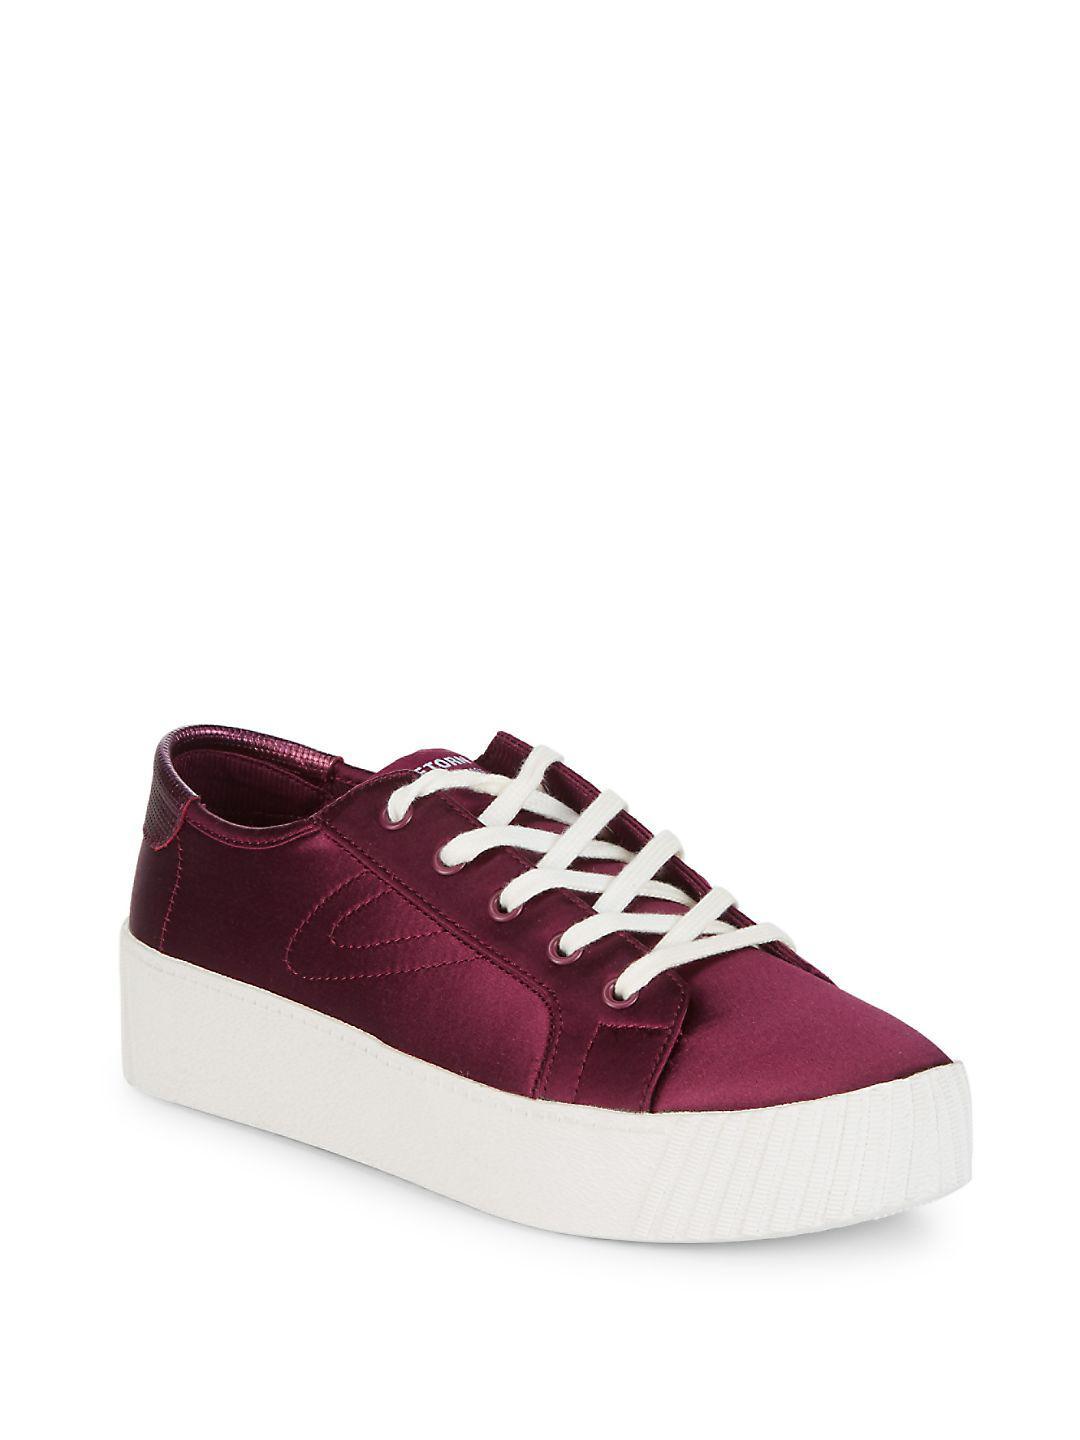 Tretorn Satin Lace-up Sneaker in Dark Red (Red)